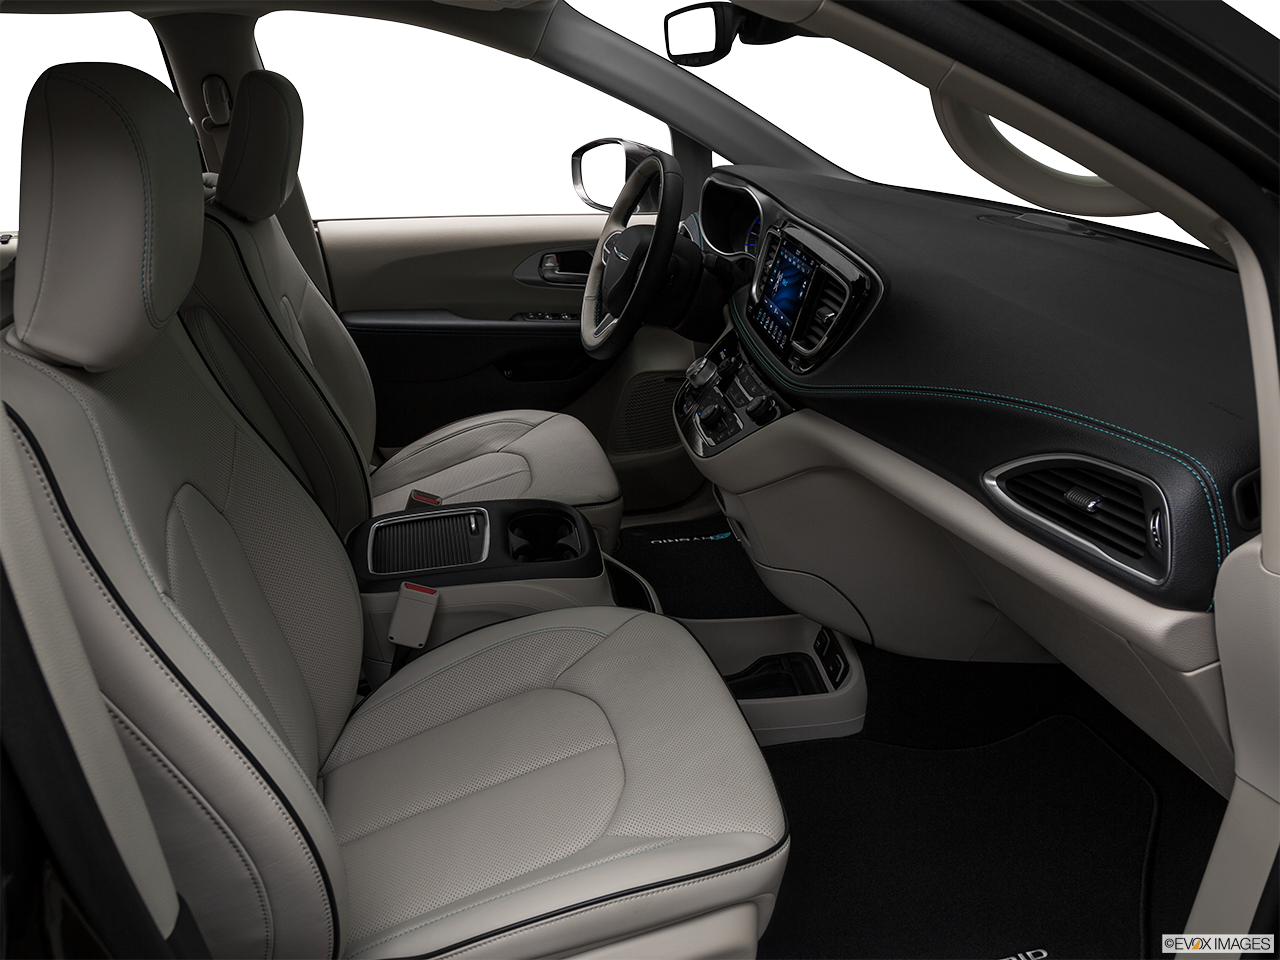 Interior view of the Chrysler Pacifica